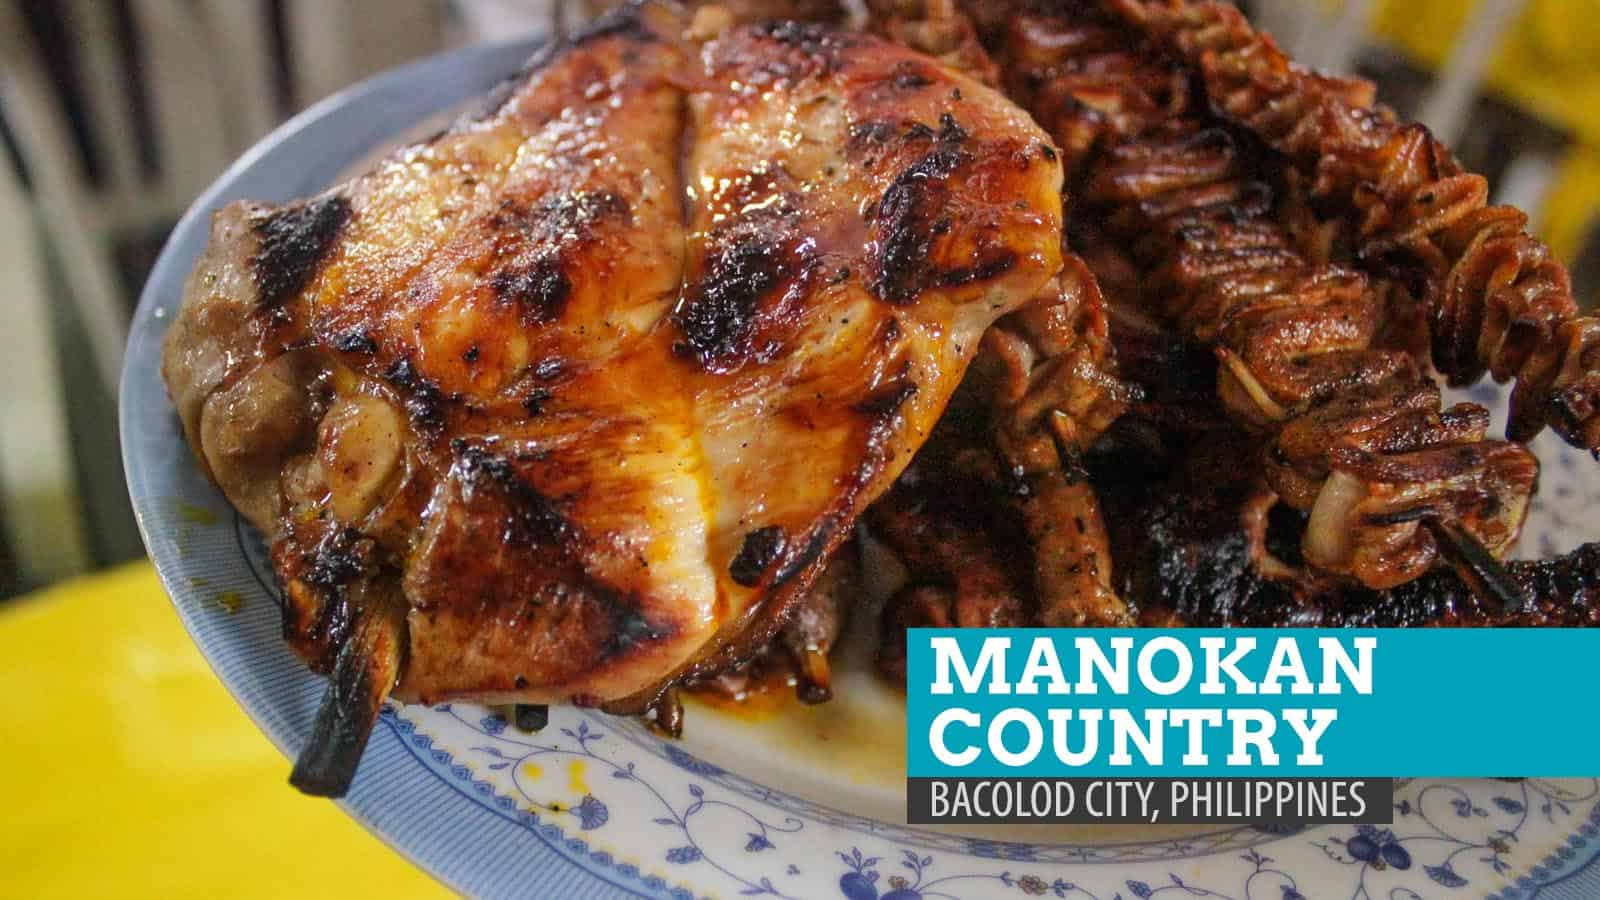 Manokan Country: Where to Eat Chicken Inasal in Bacolod City, Philippines